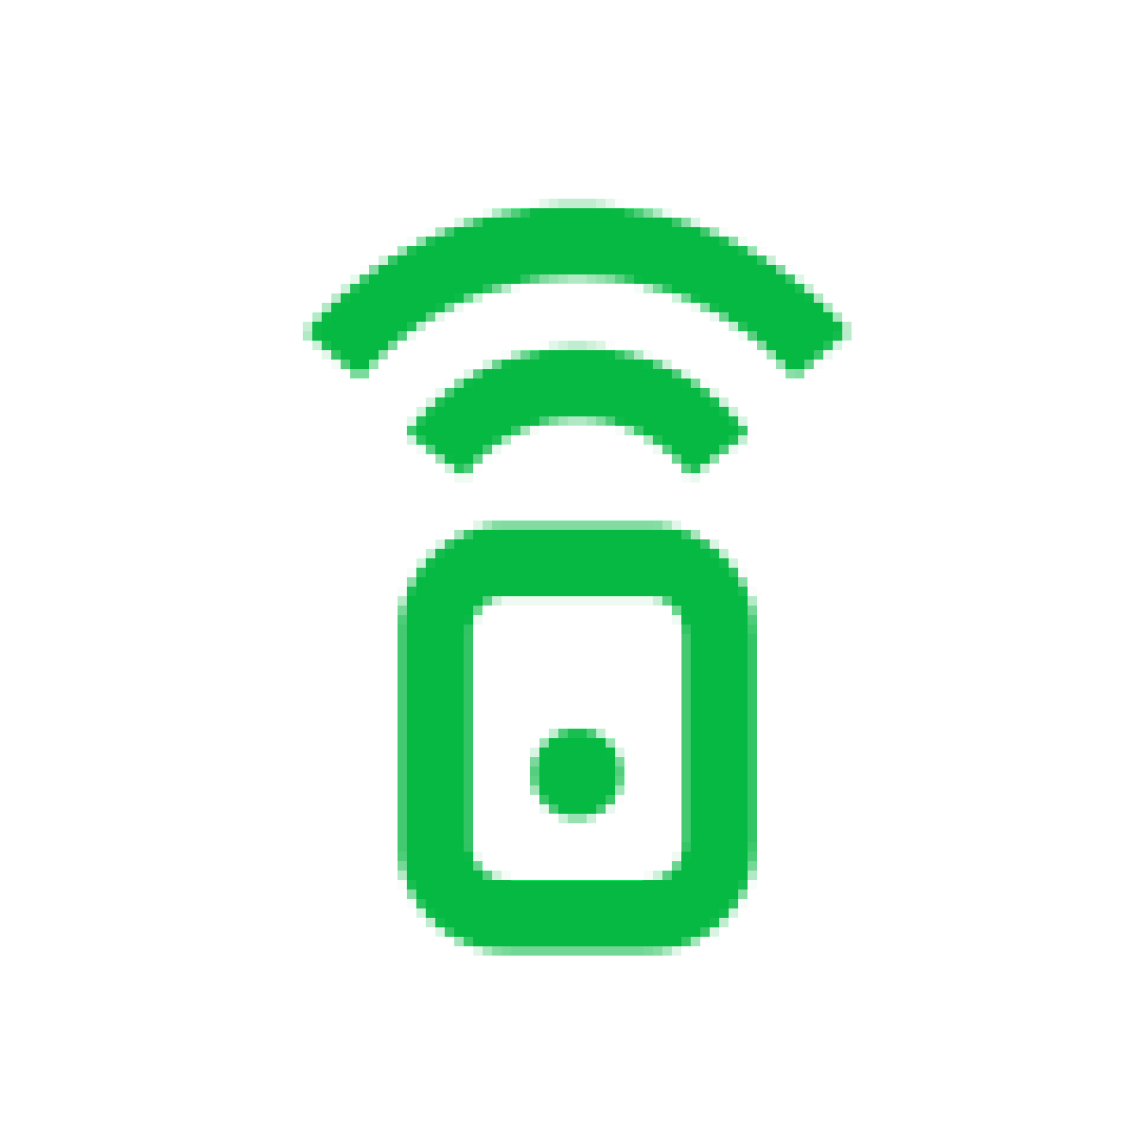 wireless_icon.png [1.86 KB]